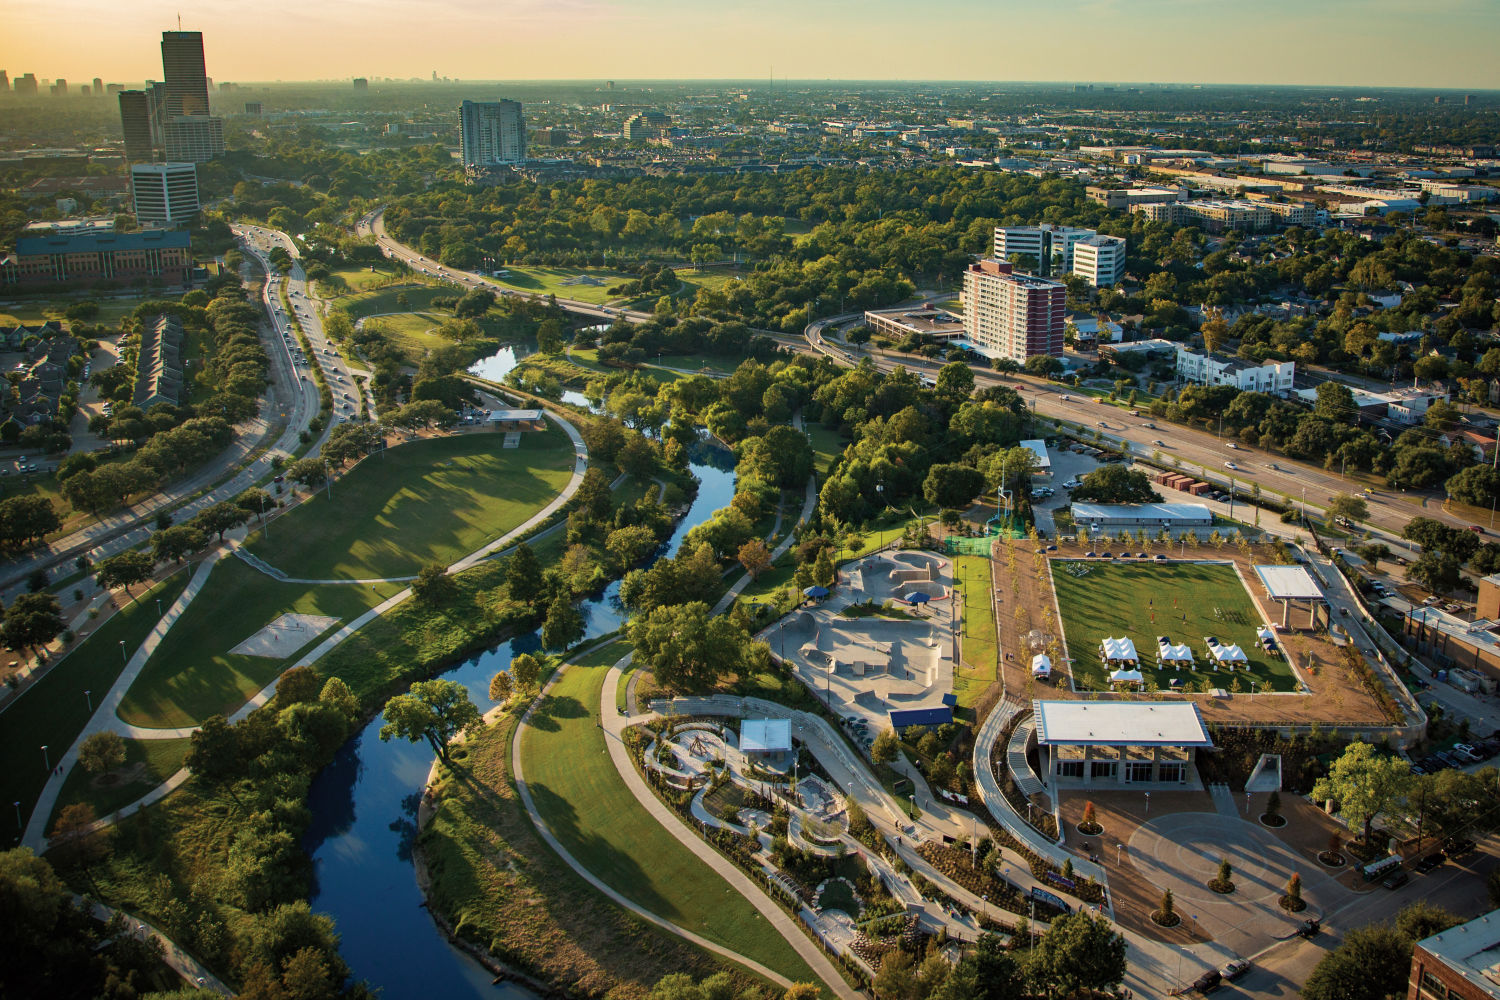 Aerial view of Buffalo Bayou Park in the inner loop of Houston